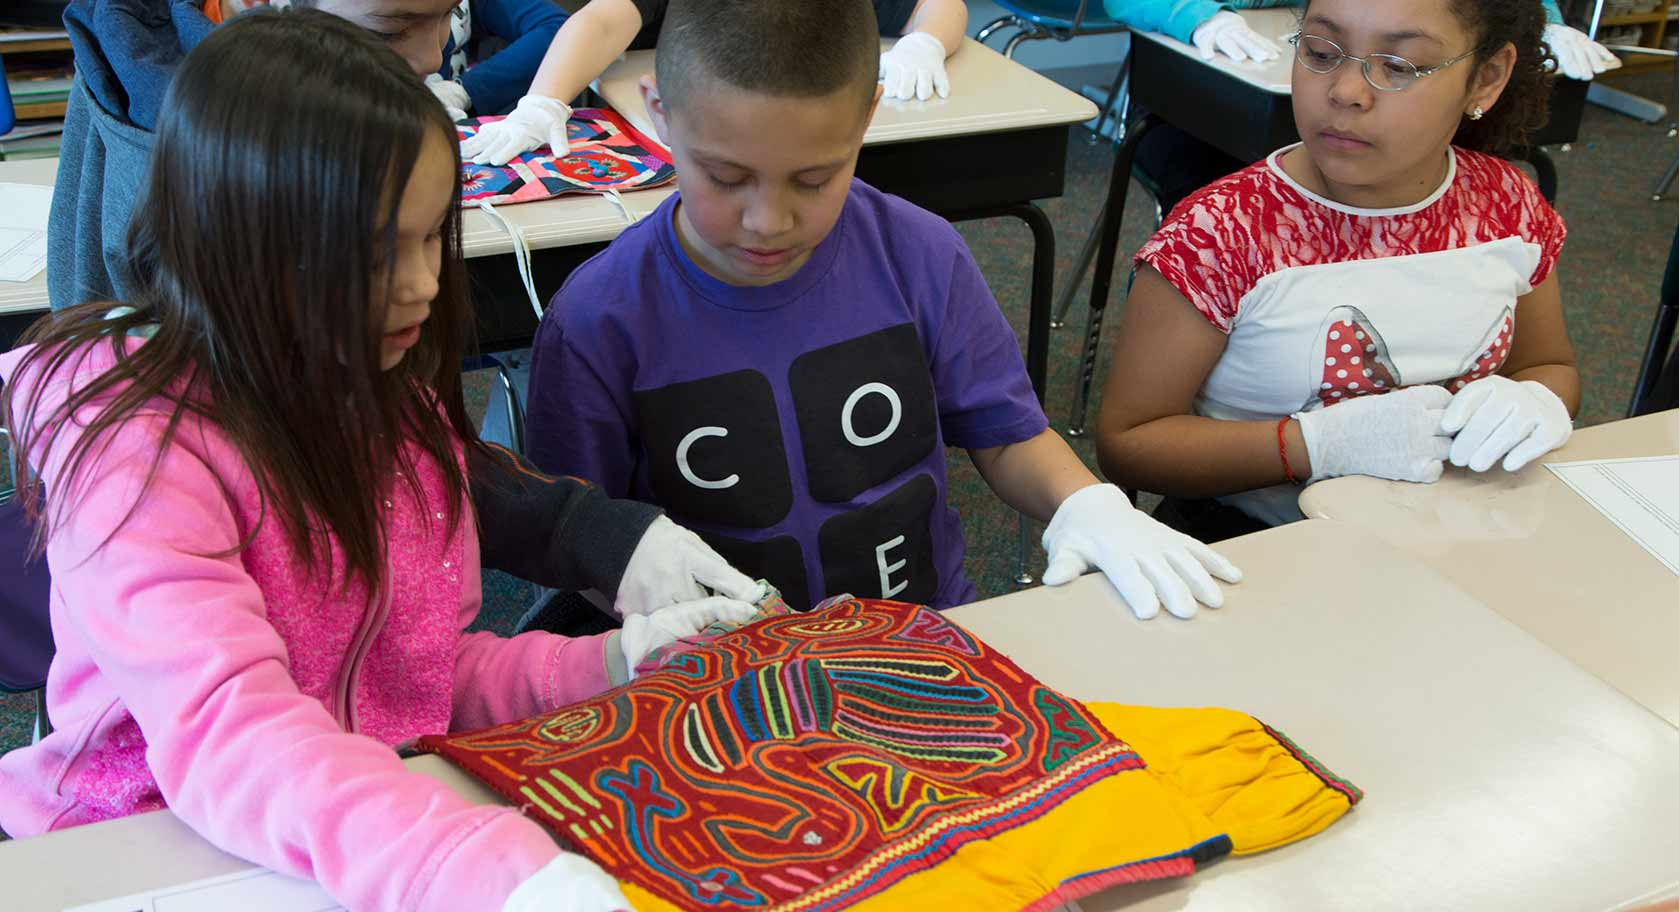 Two students examine an embroidered work of art.